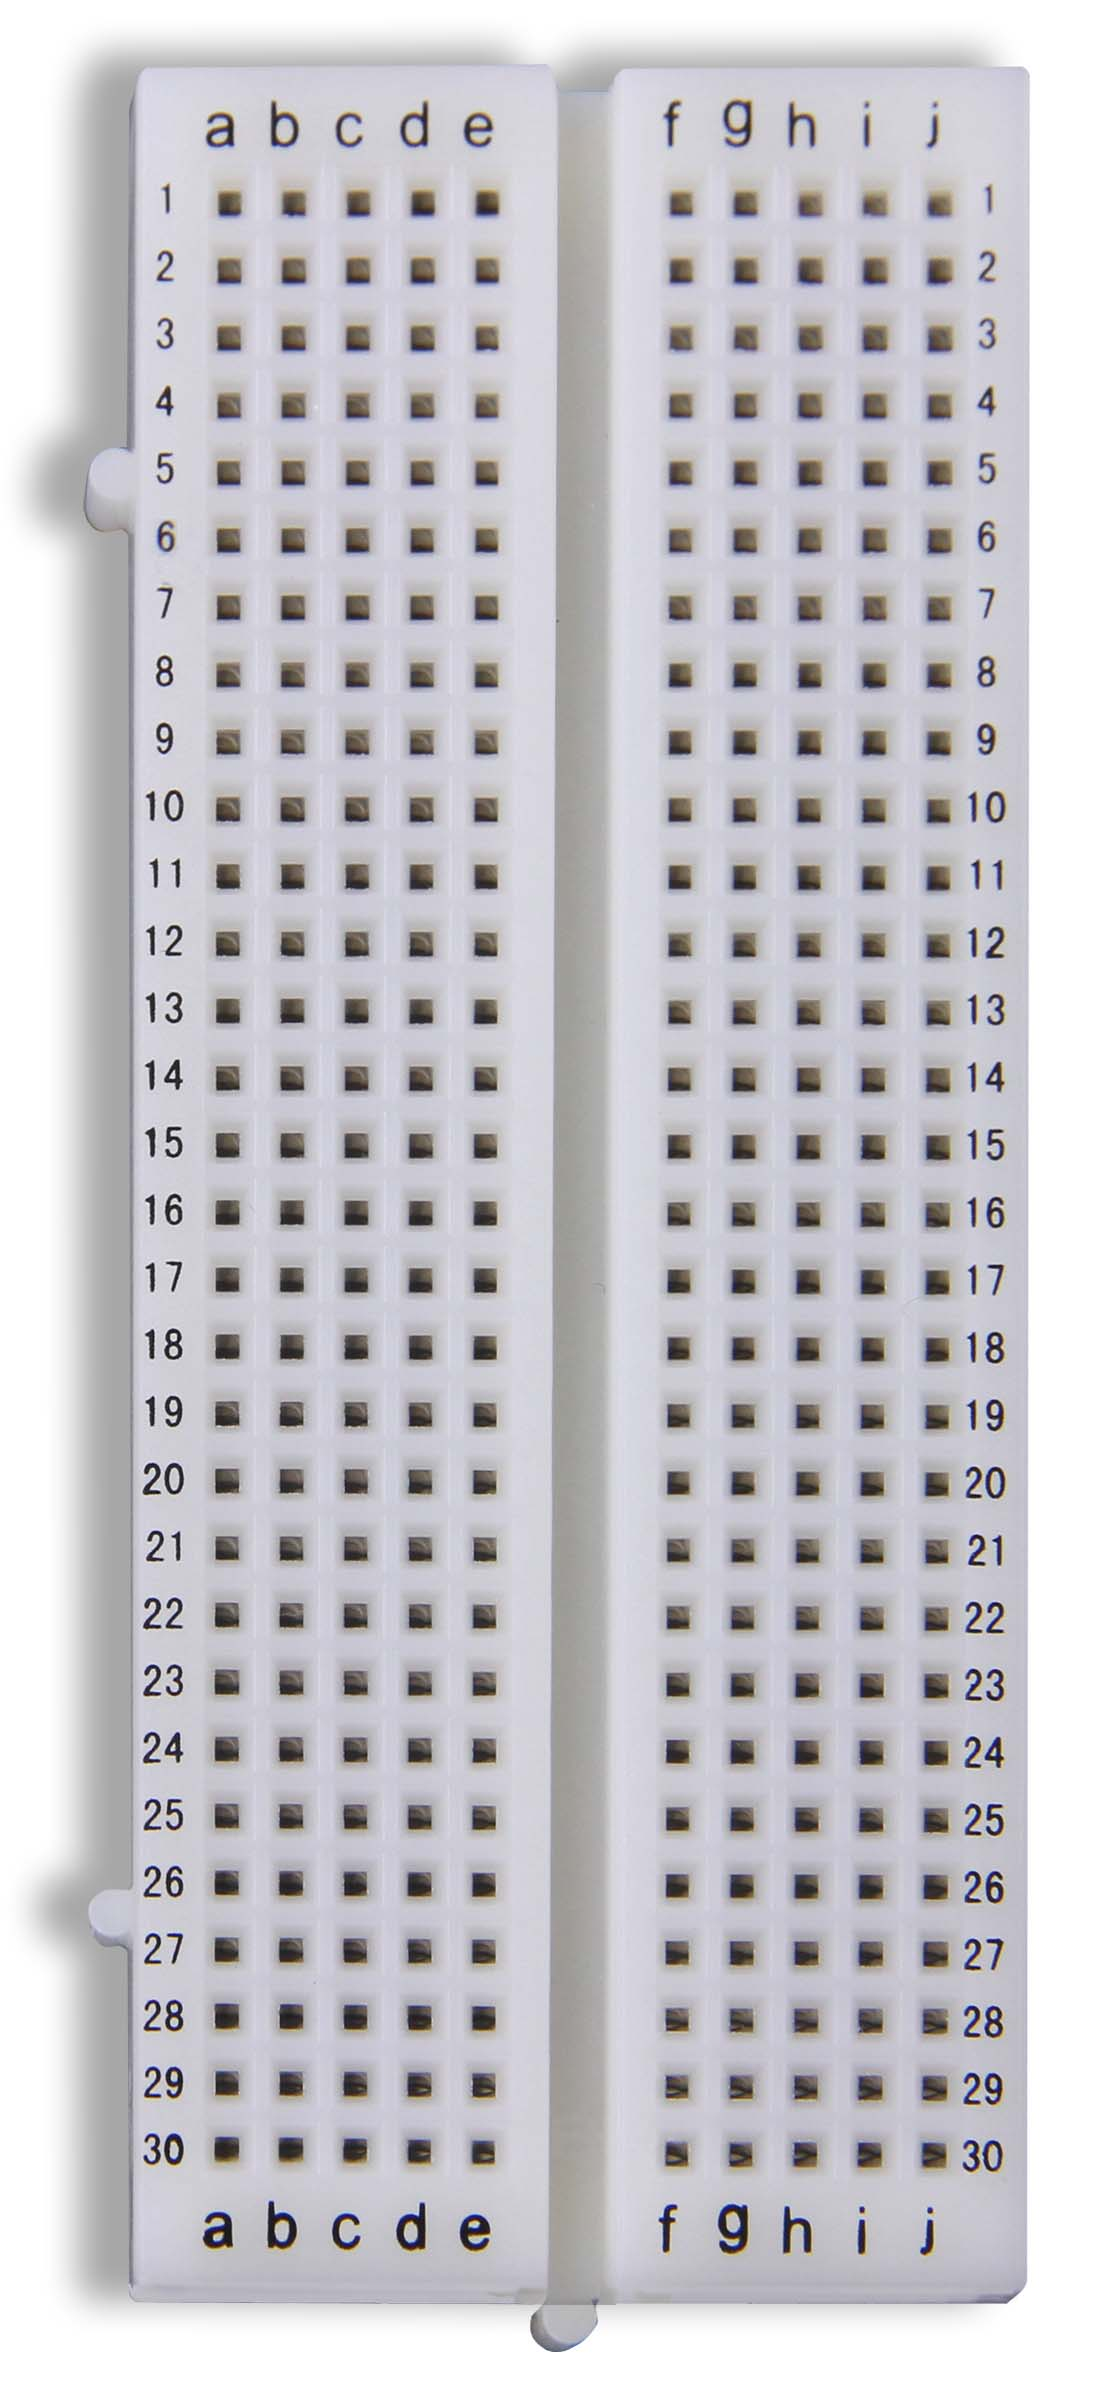 Breadboards Singles Breadboard Circuit Detail The Global Specialties Gs 300 Has Tie Points And Offers Unlimited Design Expansion Though Its Unique Molded In Interlocking Edge Rails